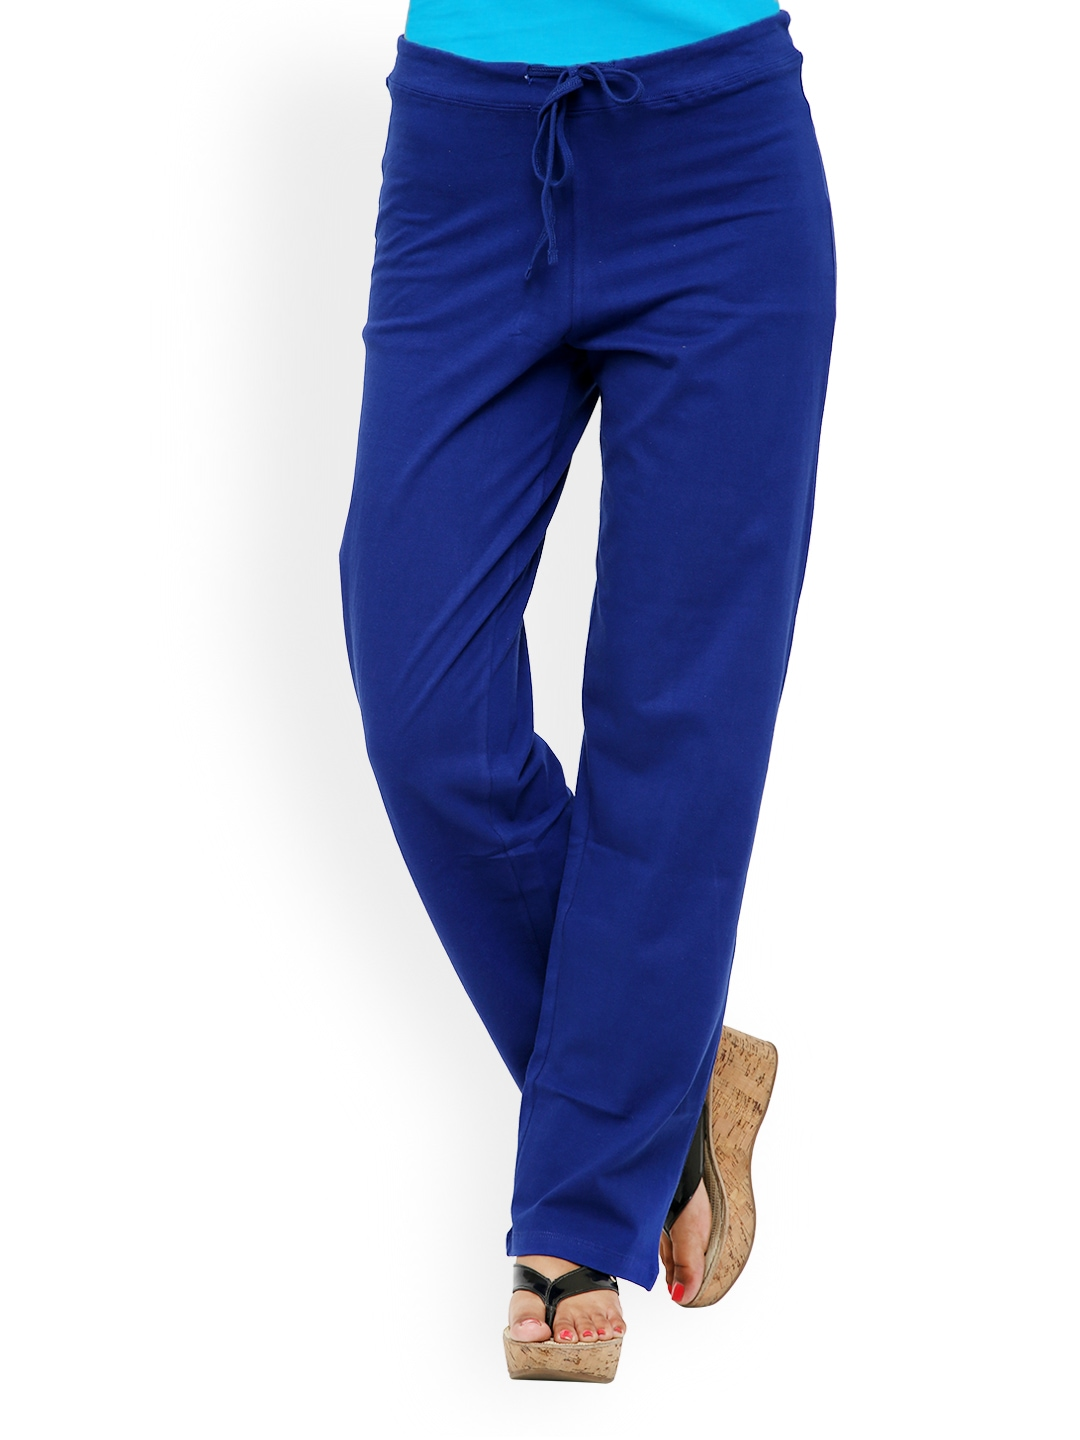 Brilliant Royal Blue Casual Women Pants From Editemodecom  Things I Want